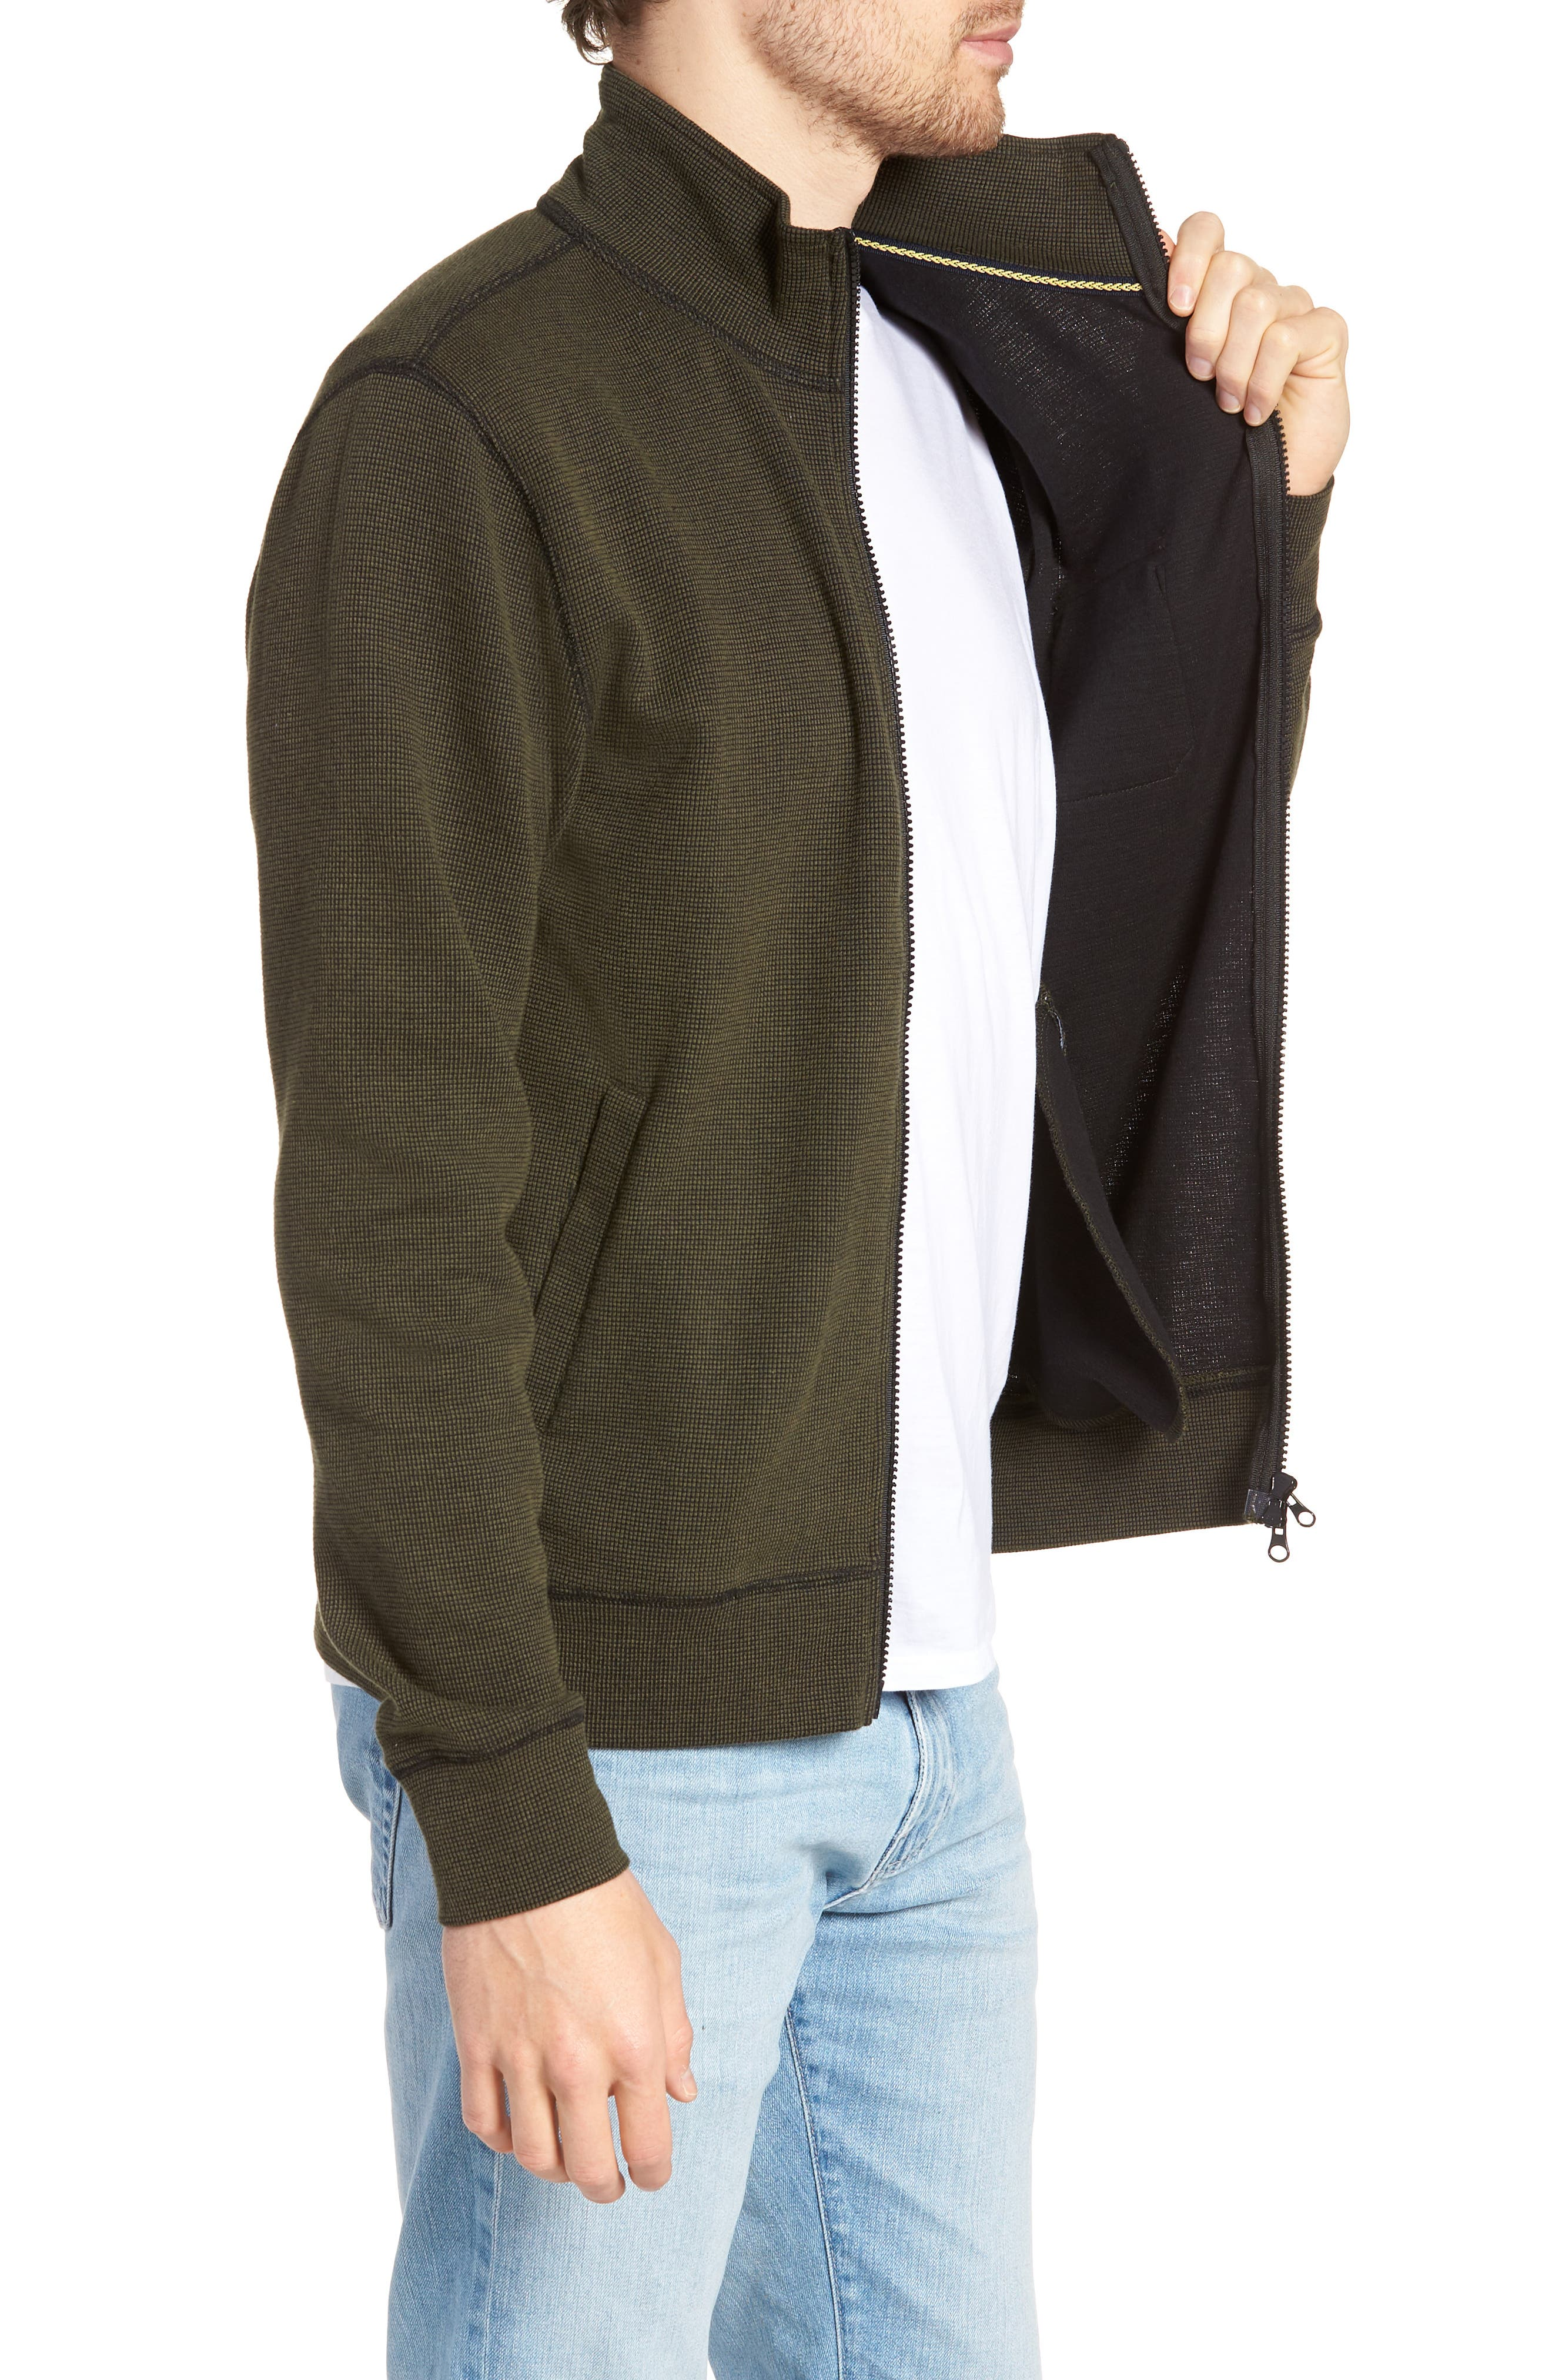 Regular Fit Cotton Cardigan,                             Alternate thumbnail 3, color,                             DARK OLIVE